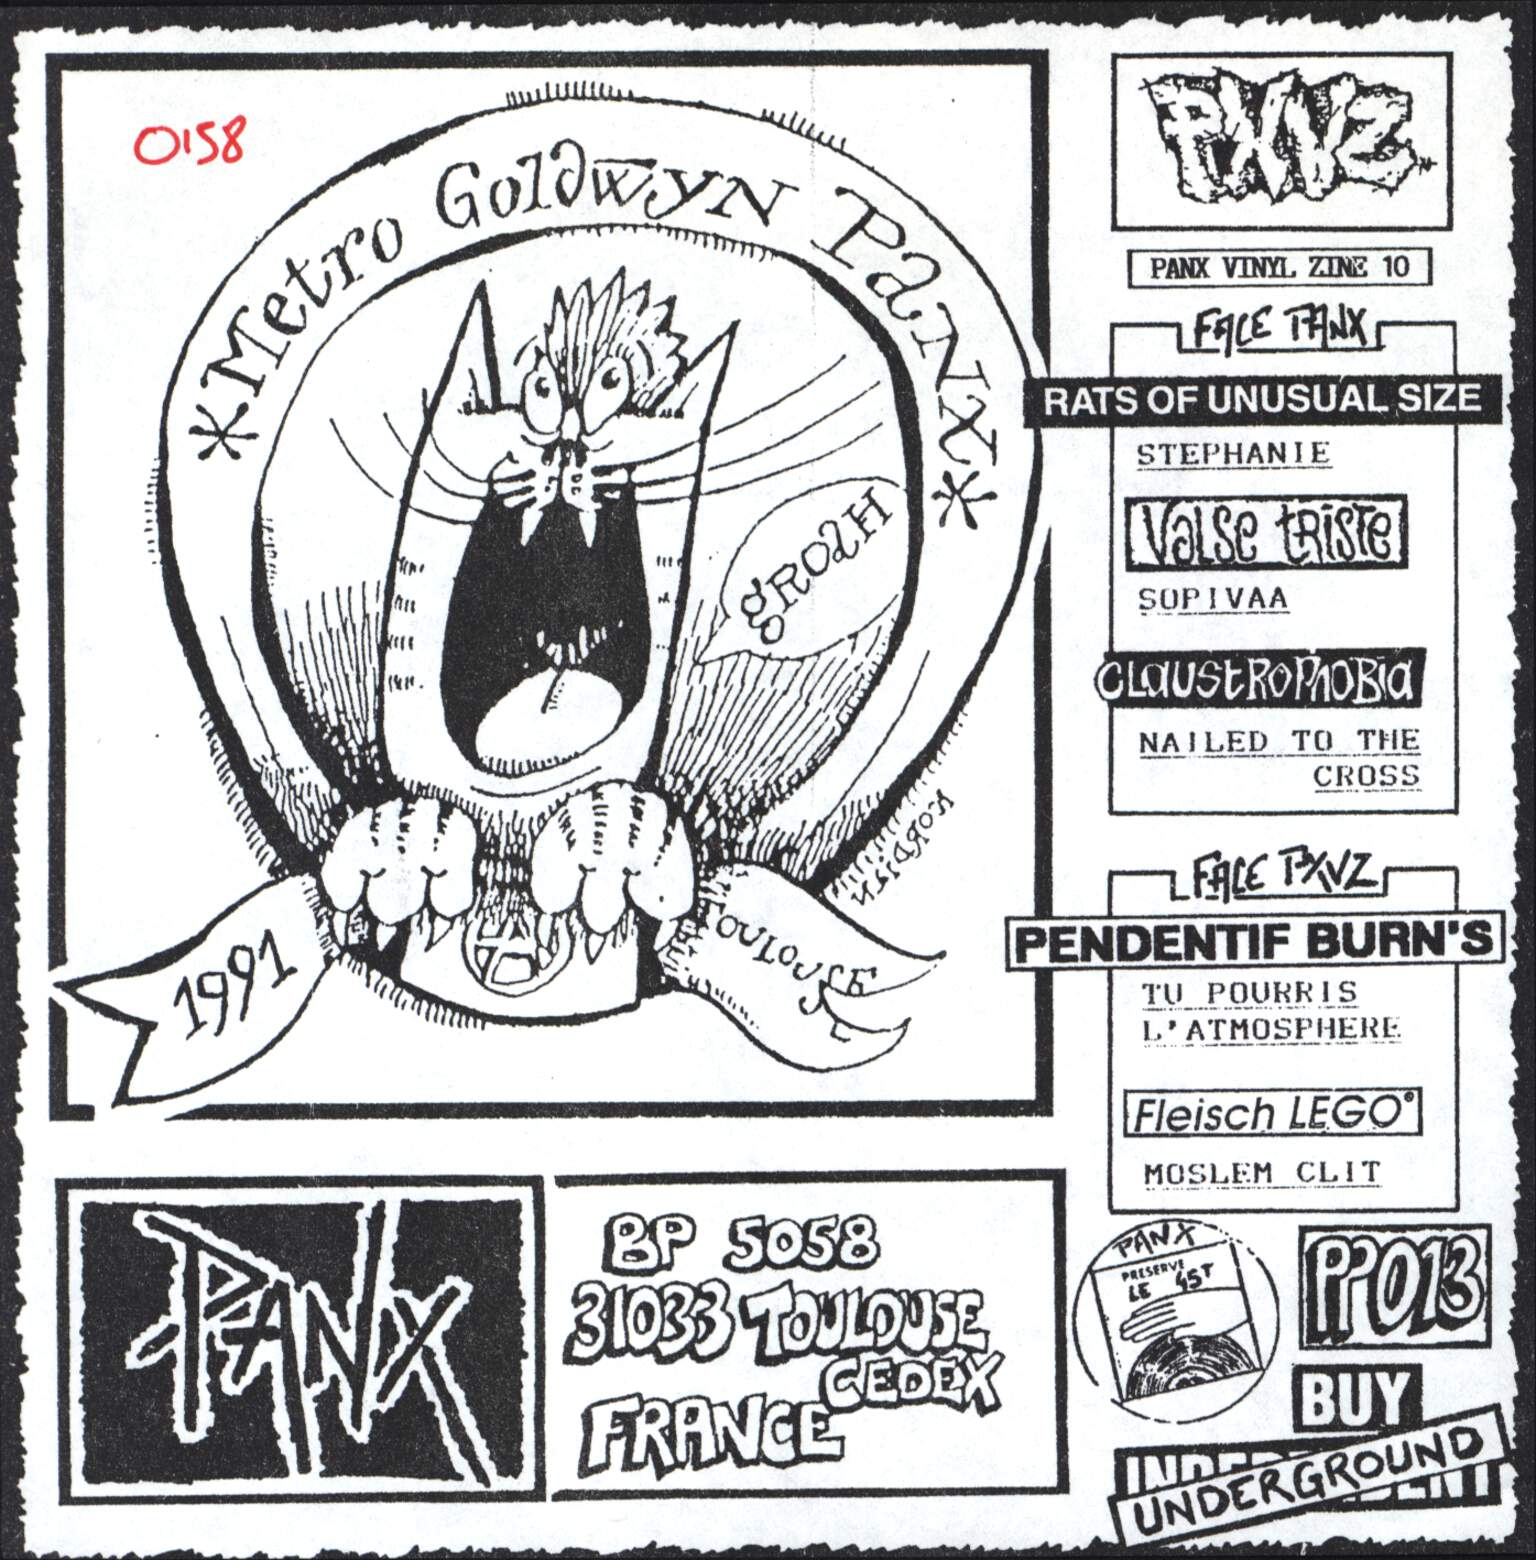 "Various: Panx Vinyl Zine 10, 7"" Single (Vinyl)"